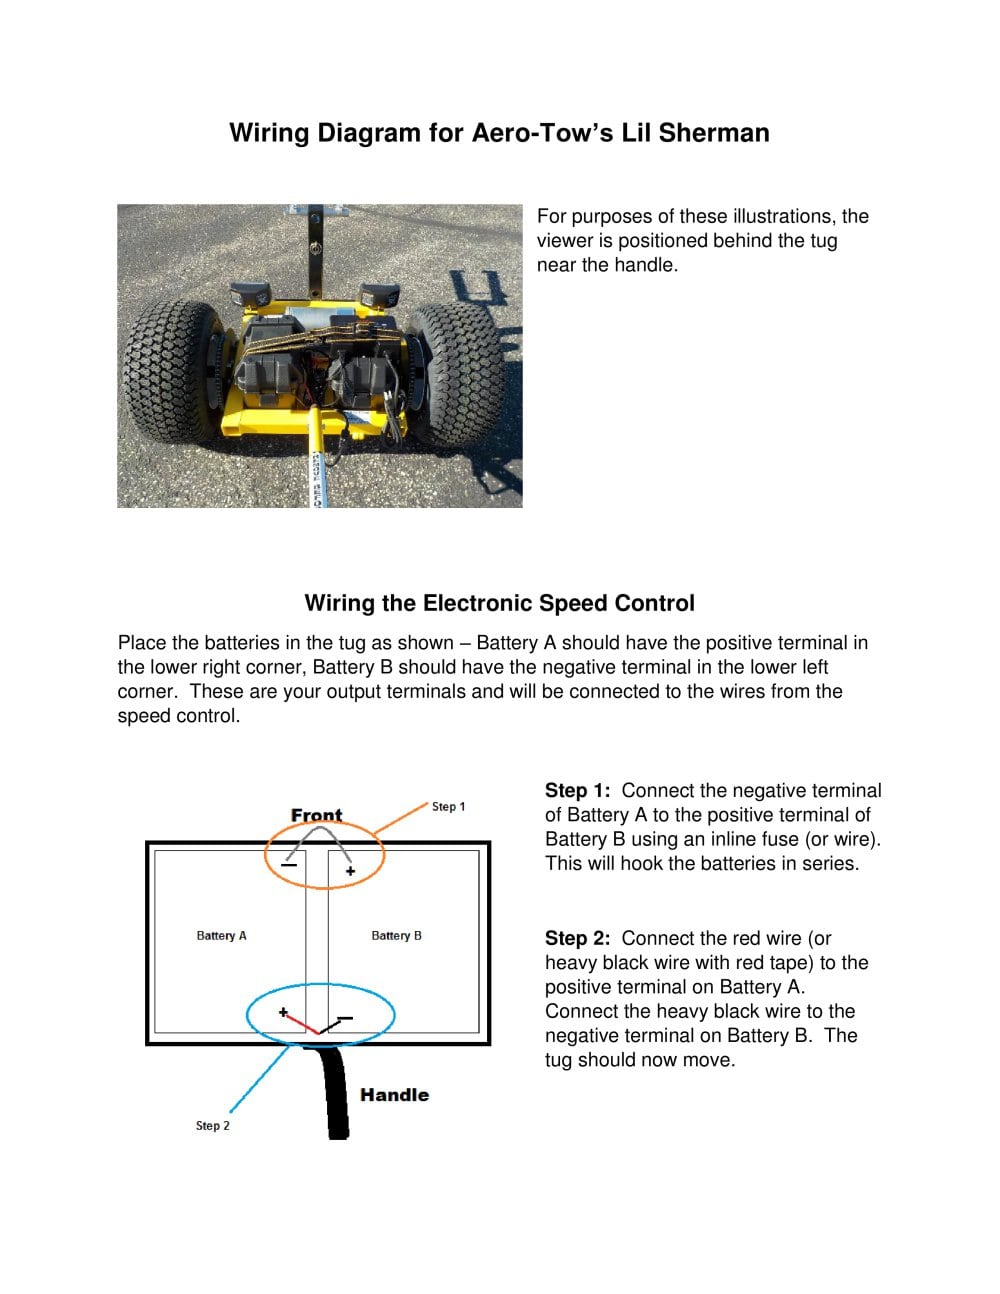 Wiring Diagram for Aero-Tow's Lil Sherman - 1 / 3 Pages